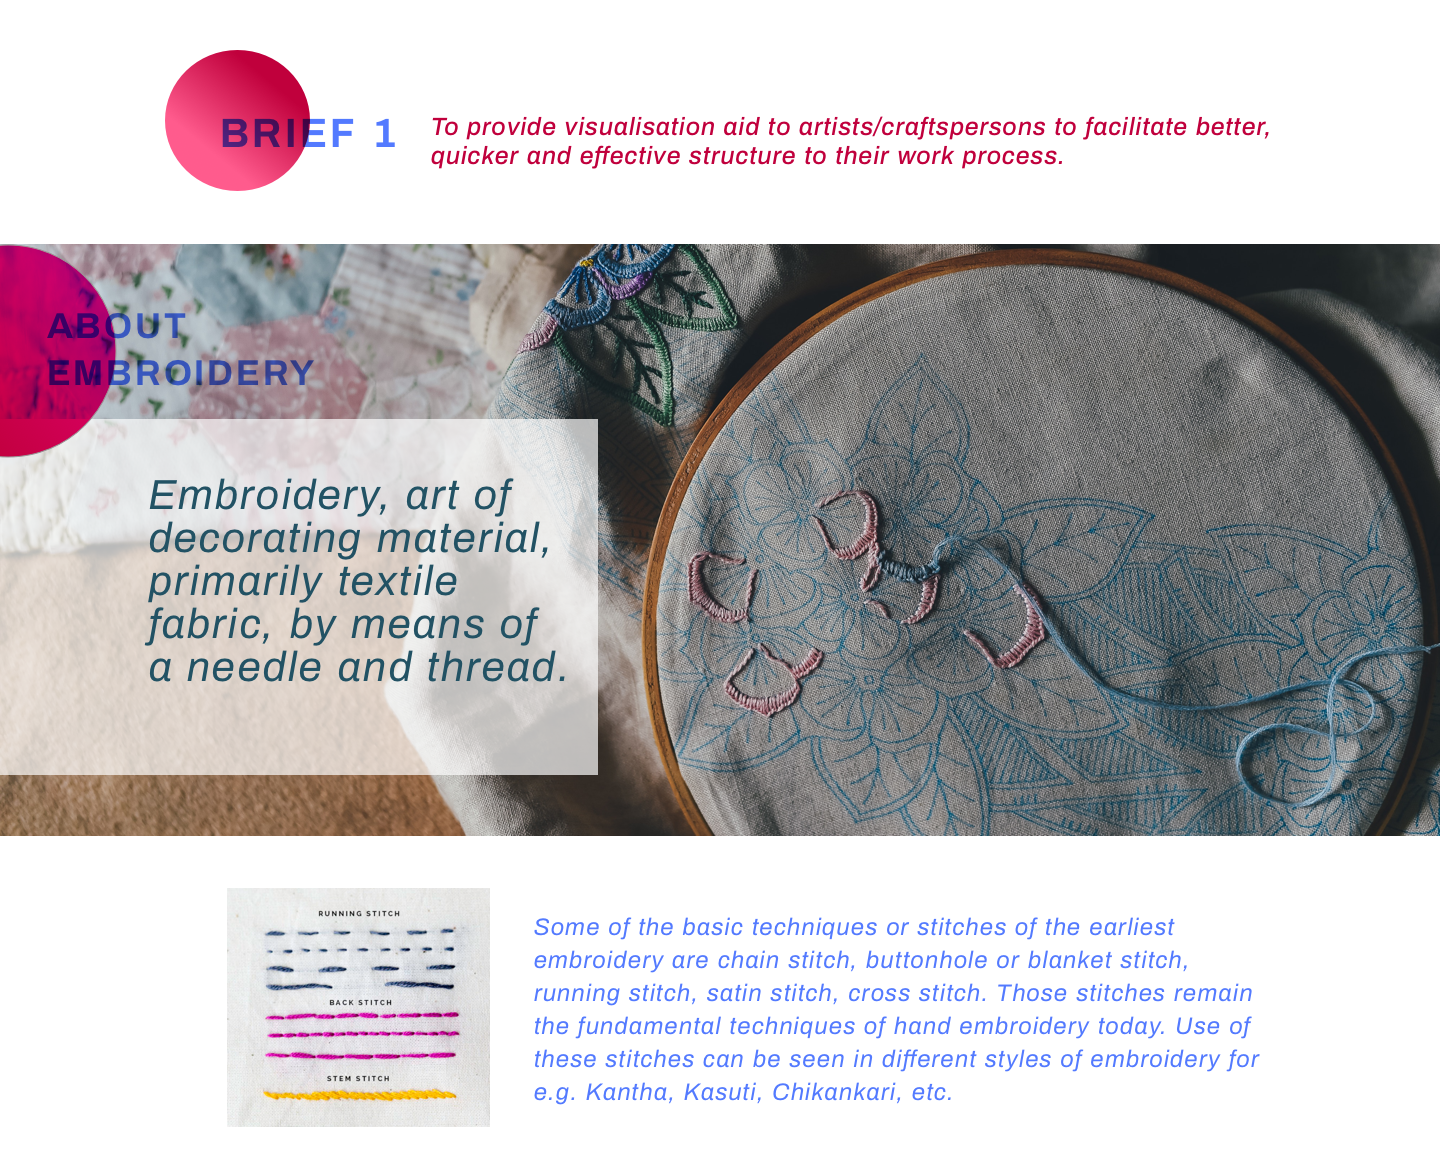 4 - initial brief and about embroidery.p